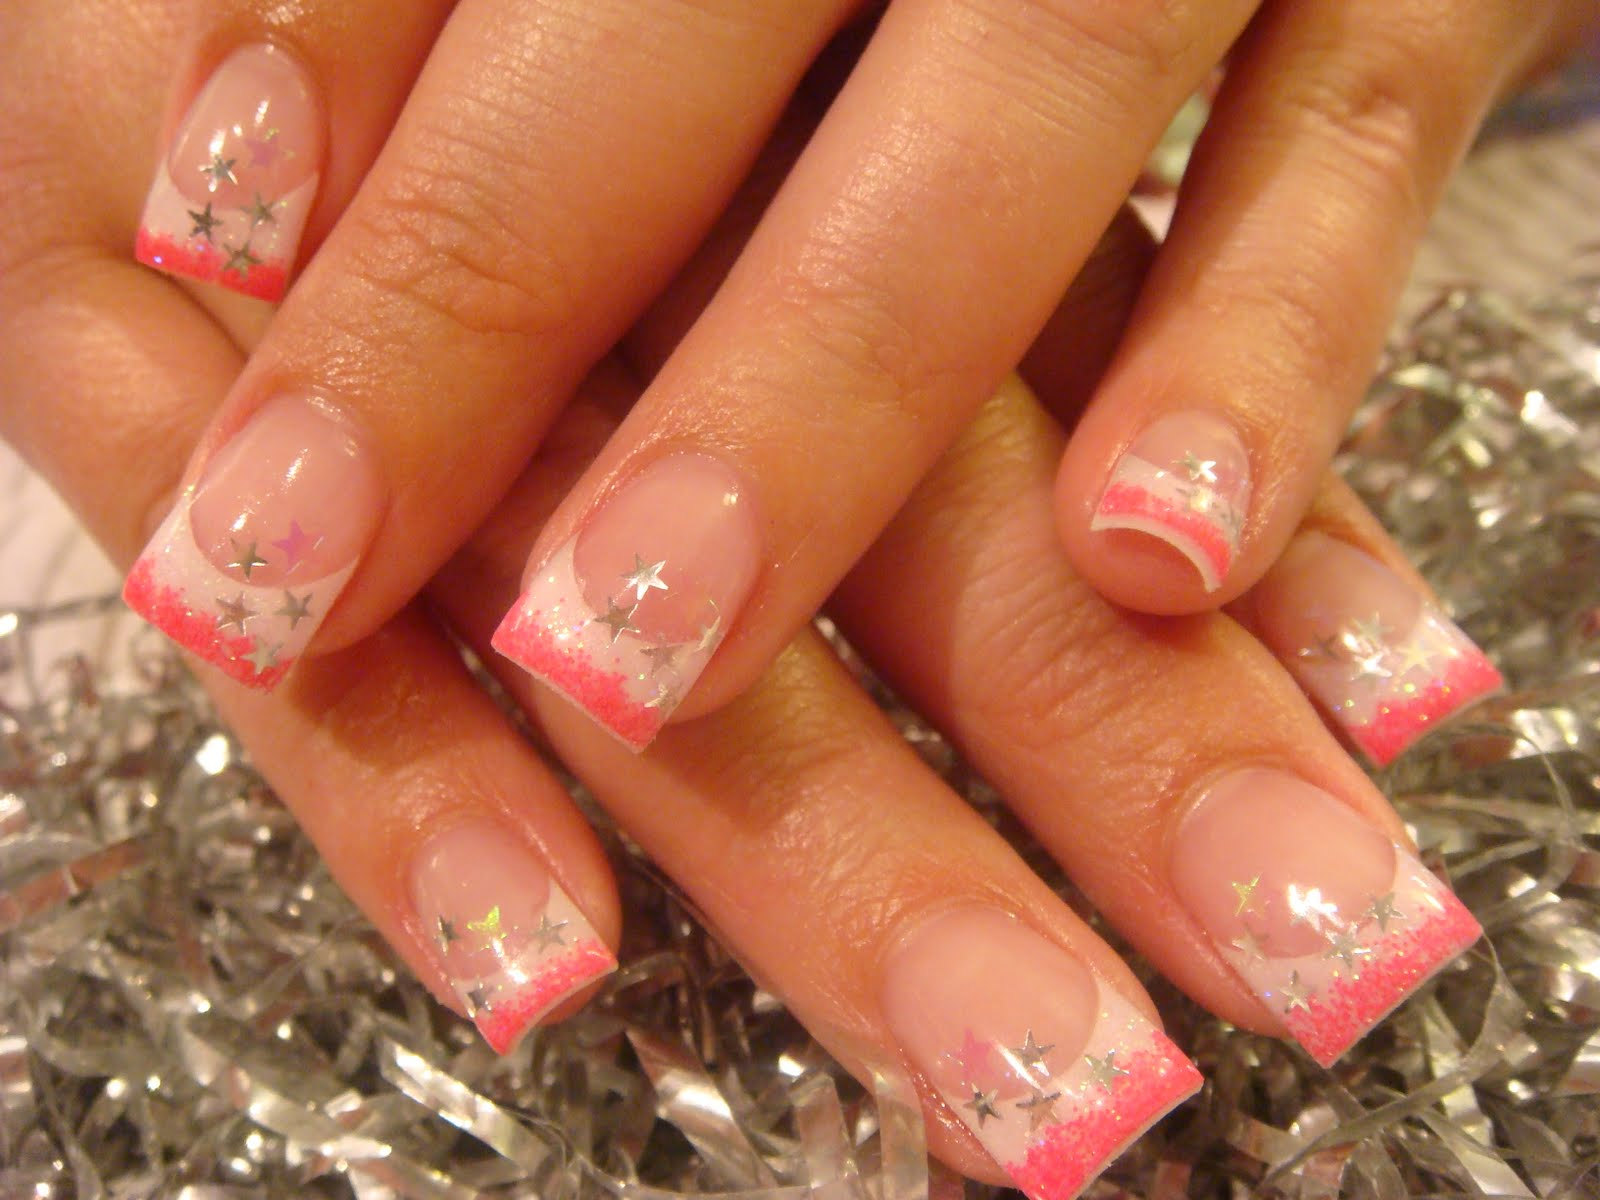 END NAILS ACRYLIC SUMMER | Nails Acrylic